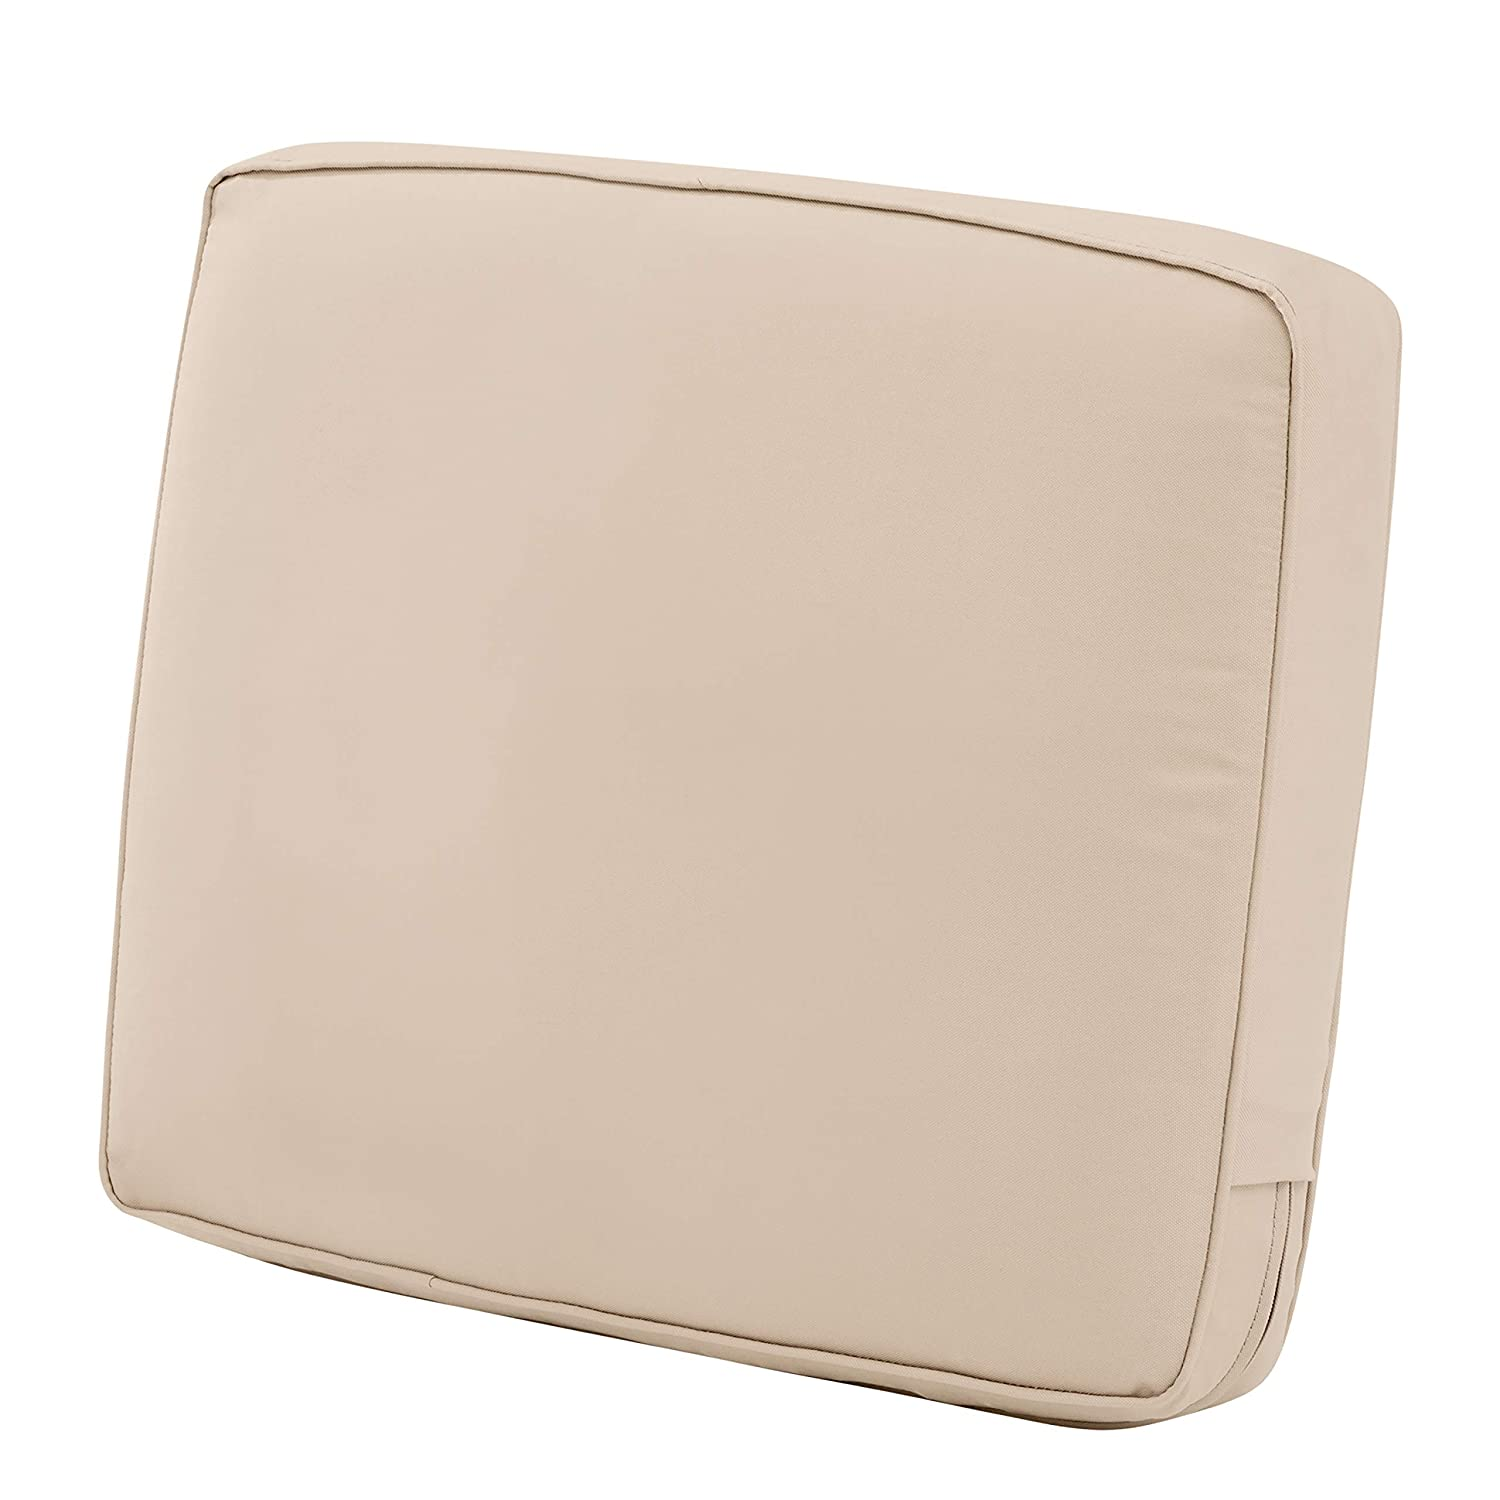 "Classic Accessories Montlake Back Cushion Foam & Slip Cover, Antique Beige, 25x22x4"" Thick"